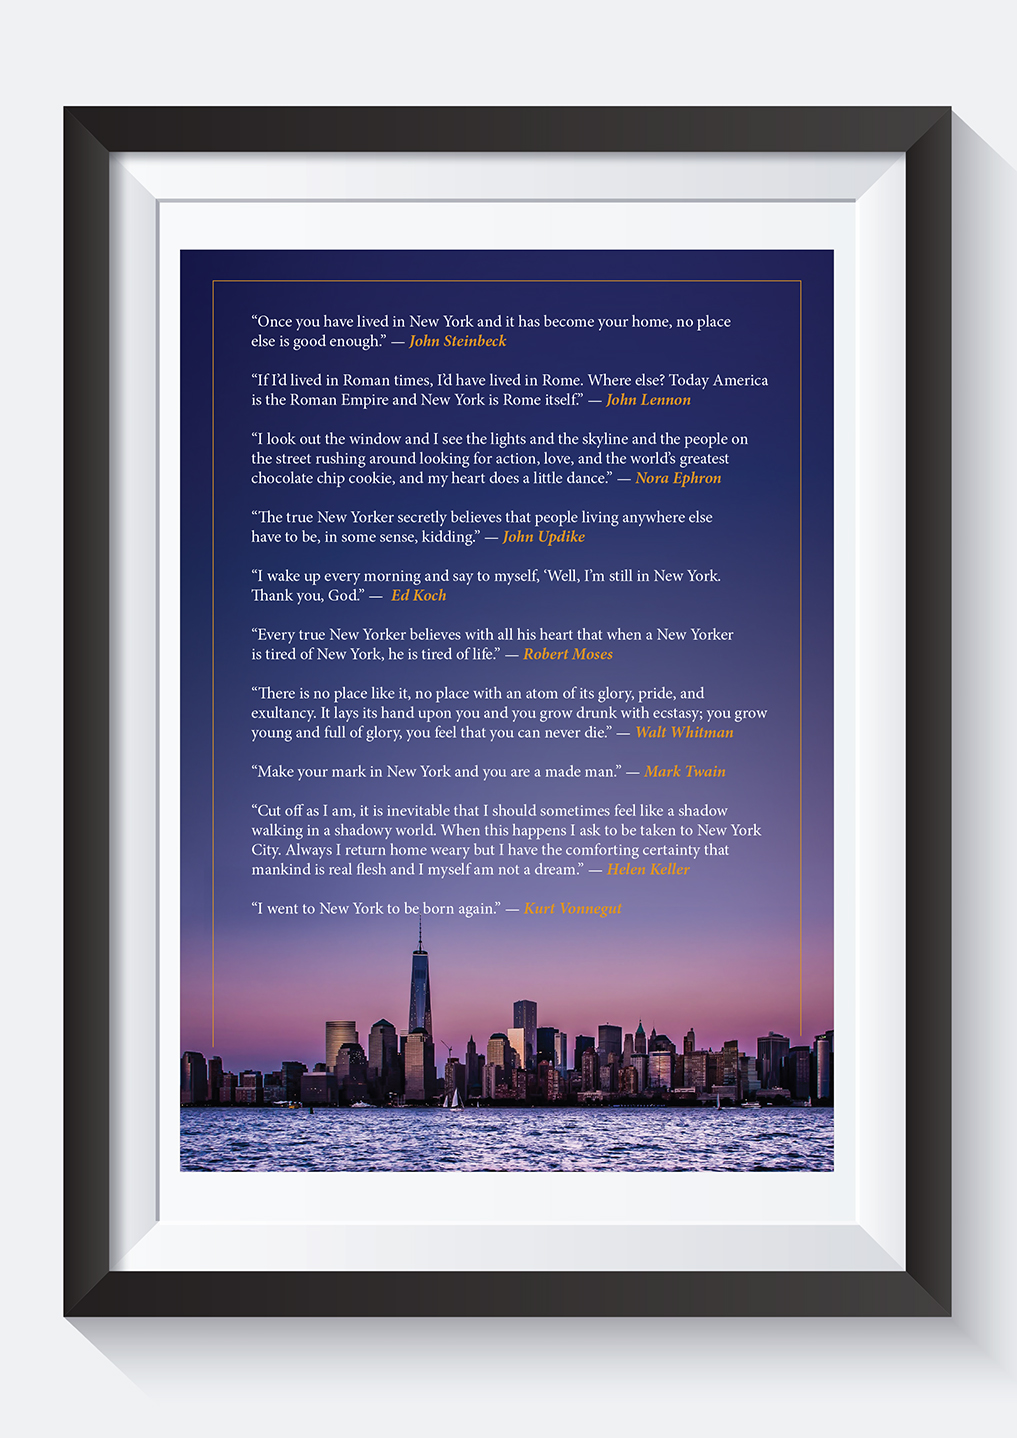 Upmarket Serious Quotes Poster Design For A Company By Andrew3344